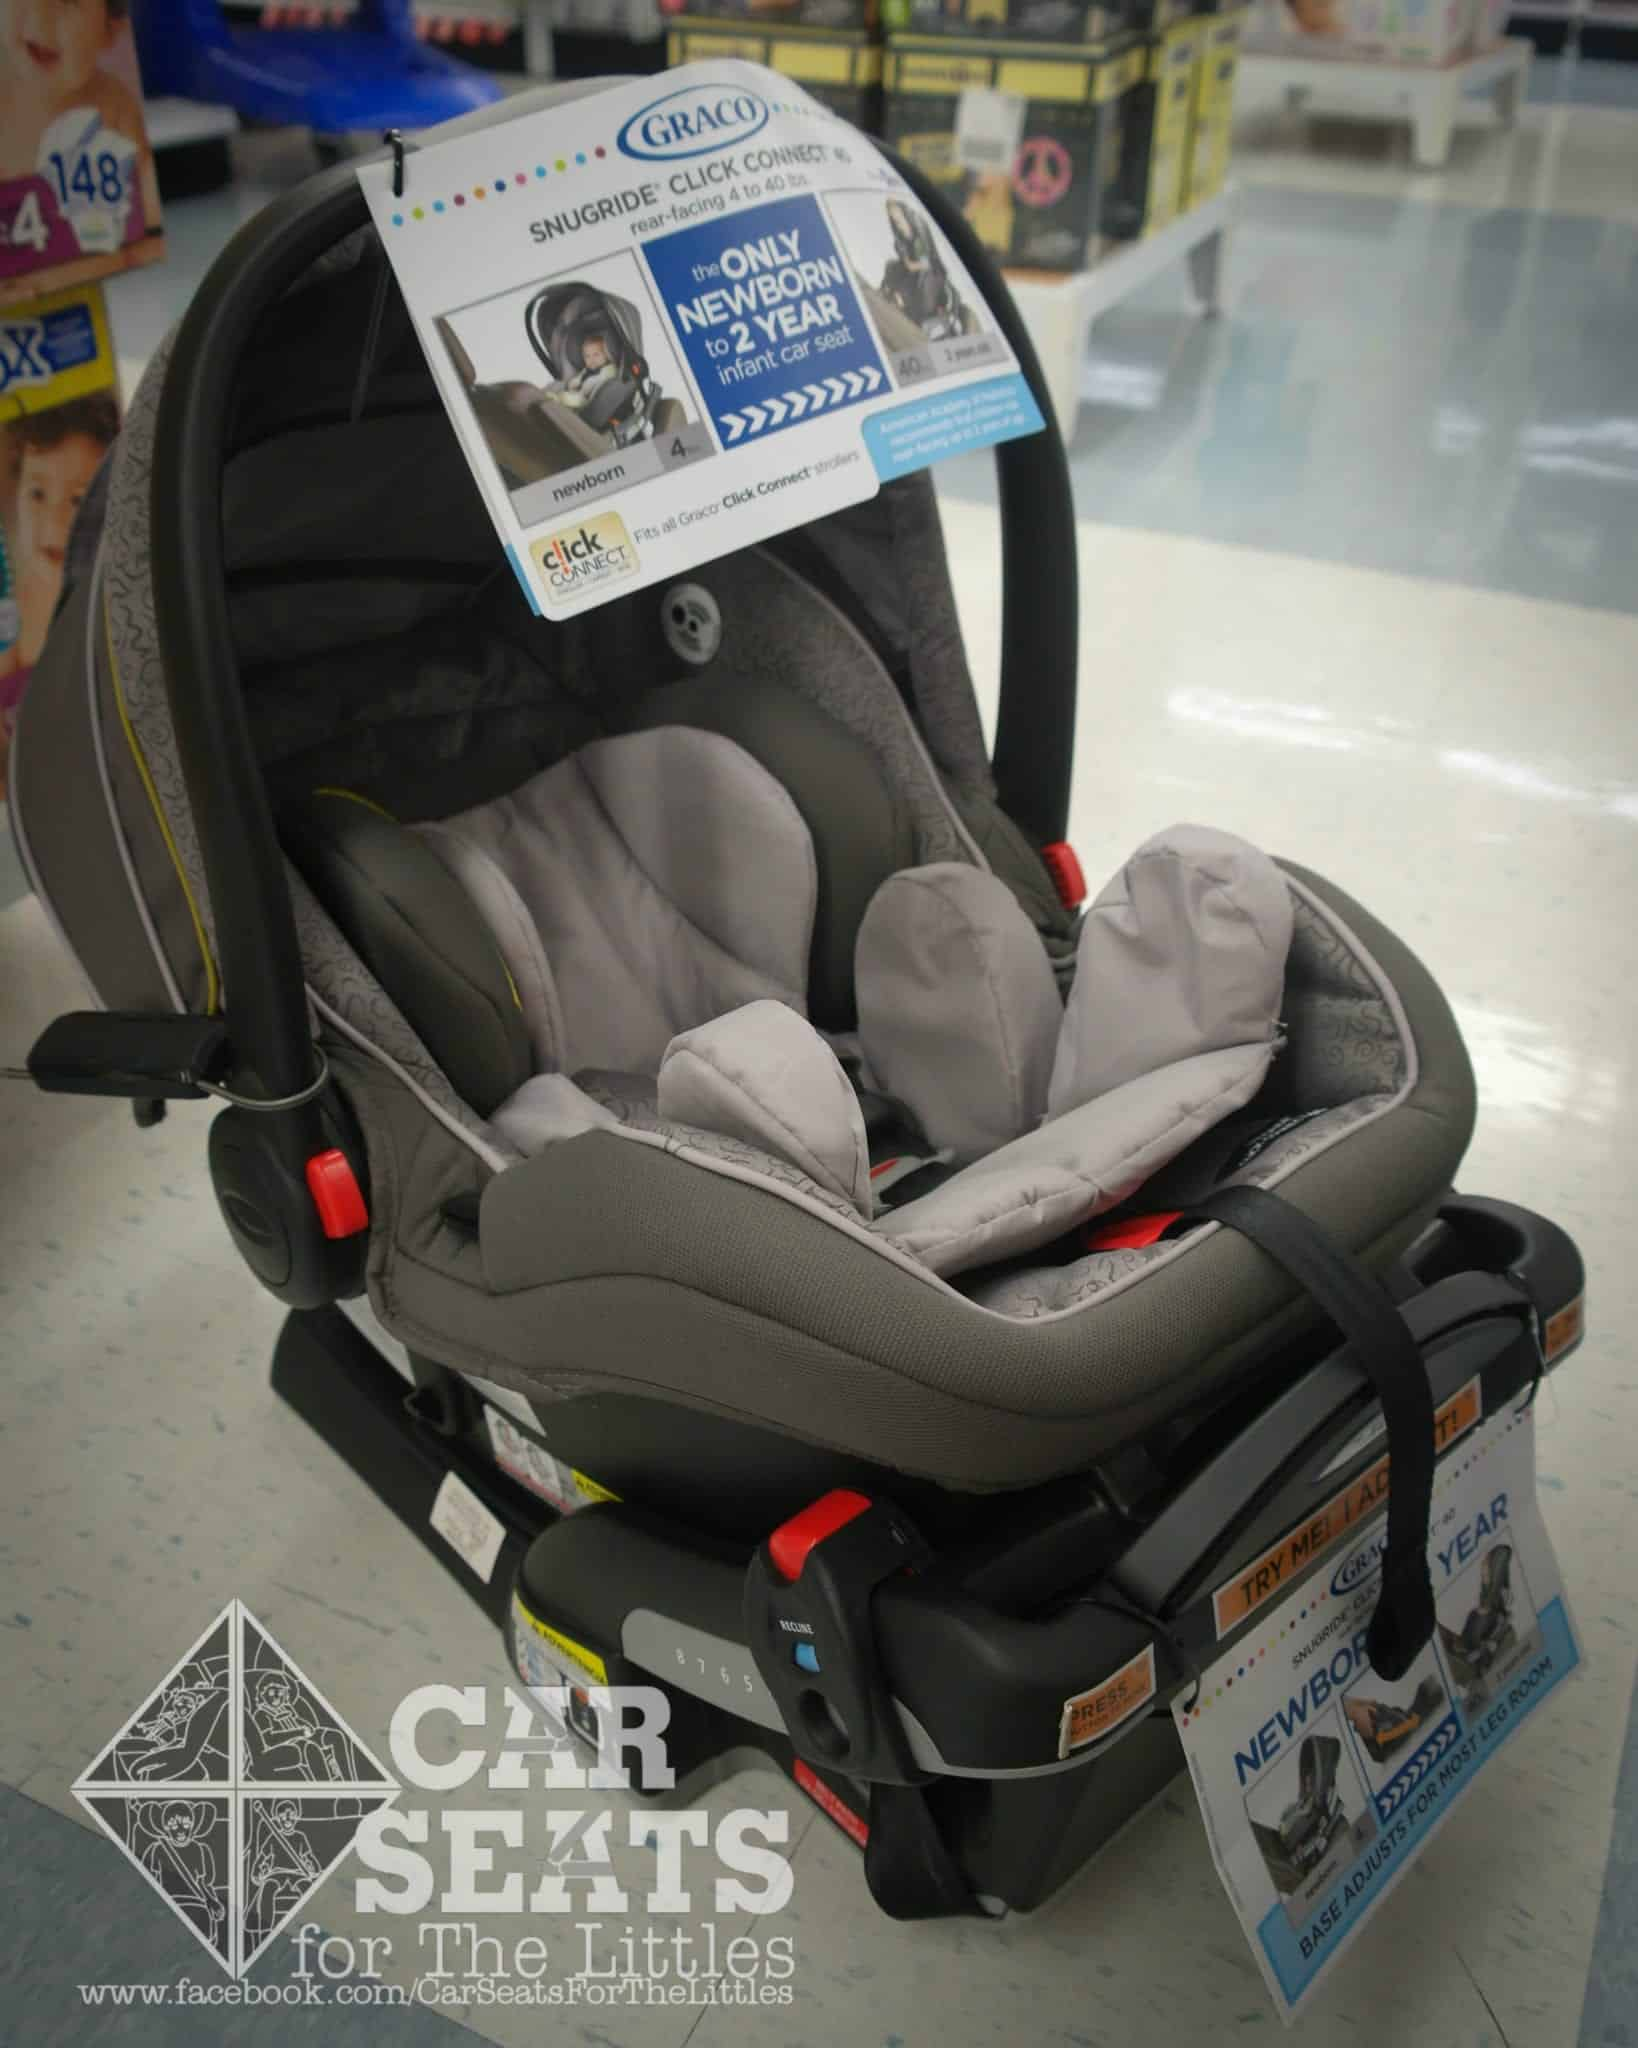 Child Seat Safety Laws California Graco Rear Facing Only Car Seats What 39;s The Difference